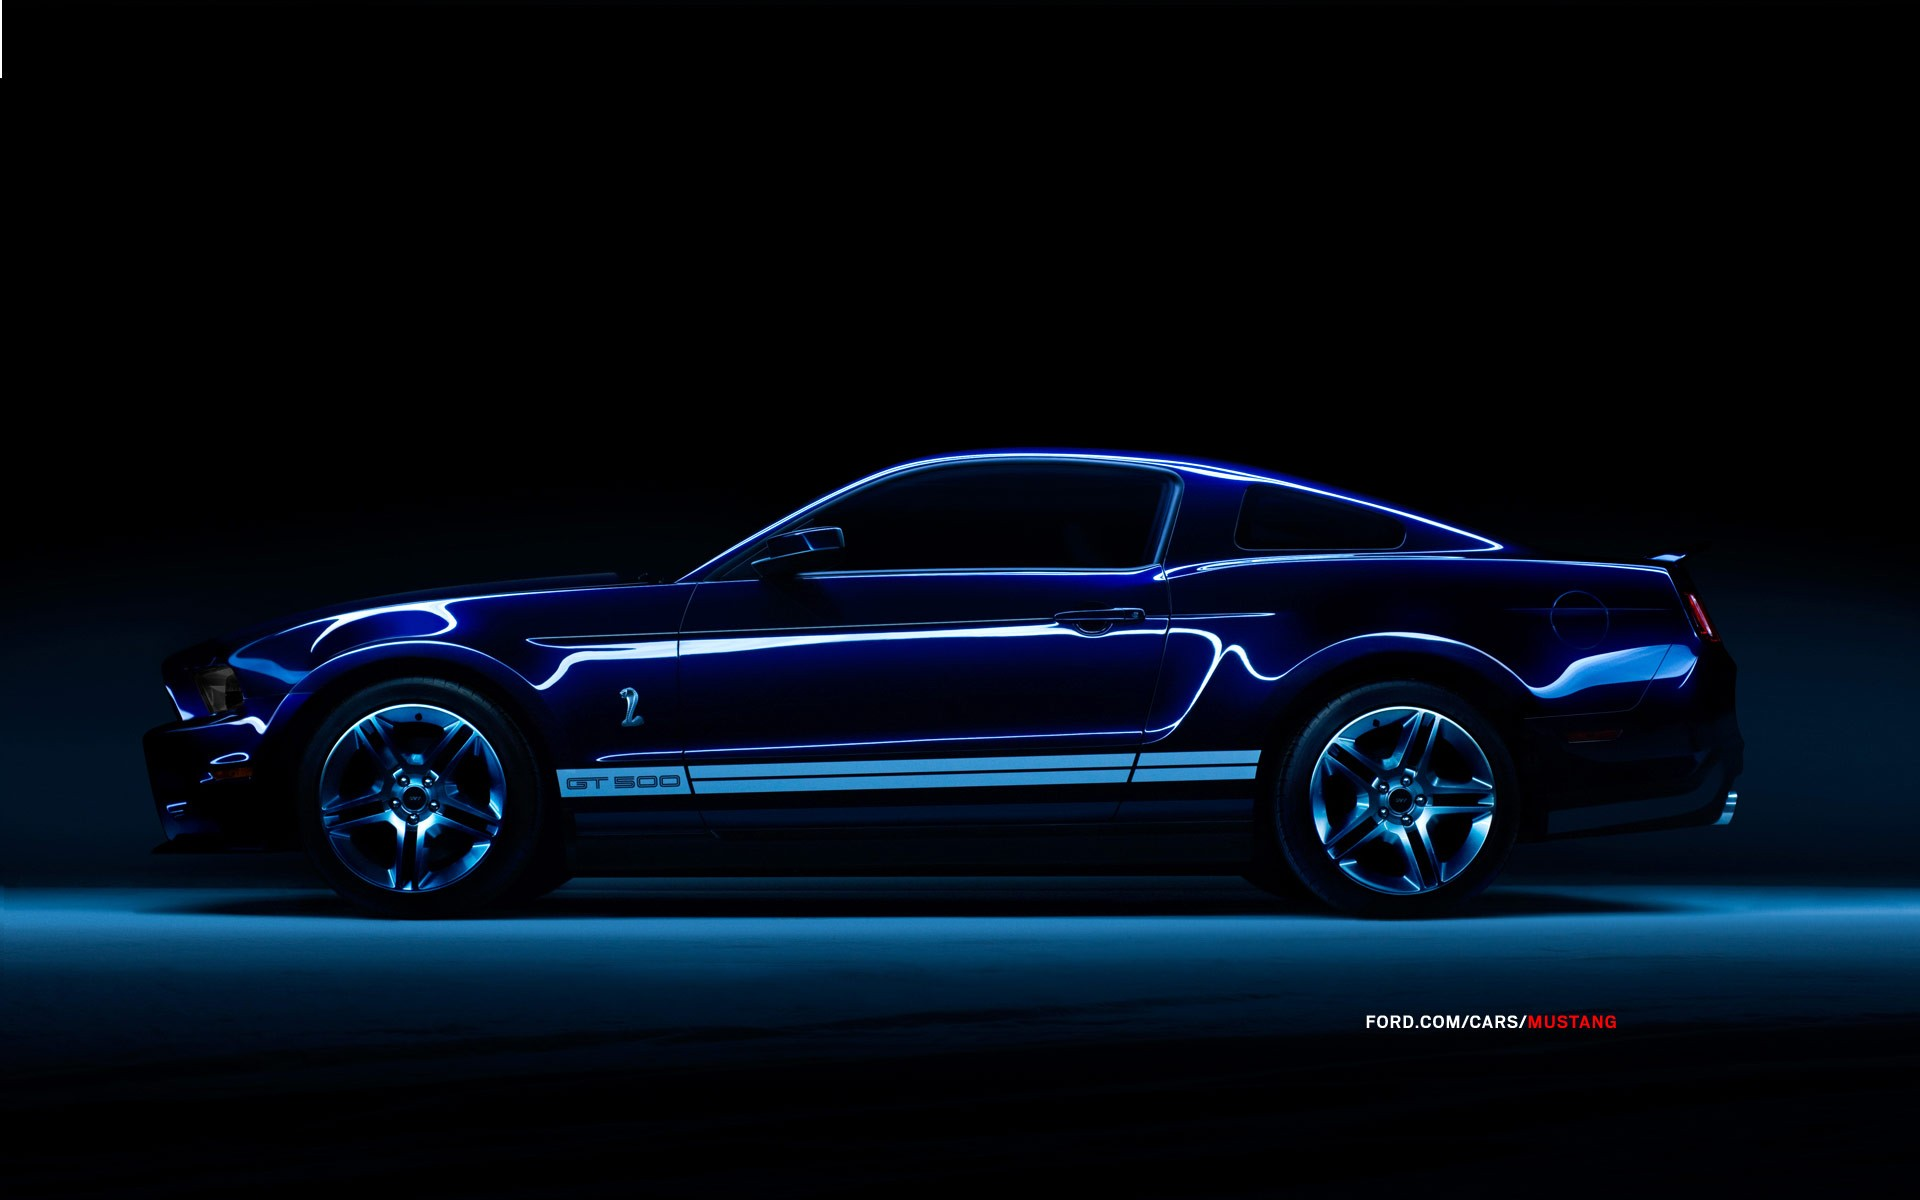 Shelby Mustang Wallpaper For Computer Wallpapersafari